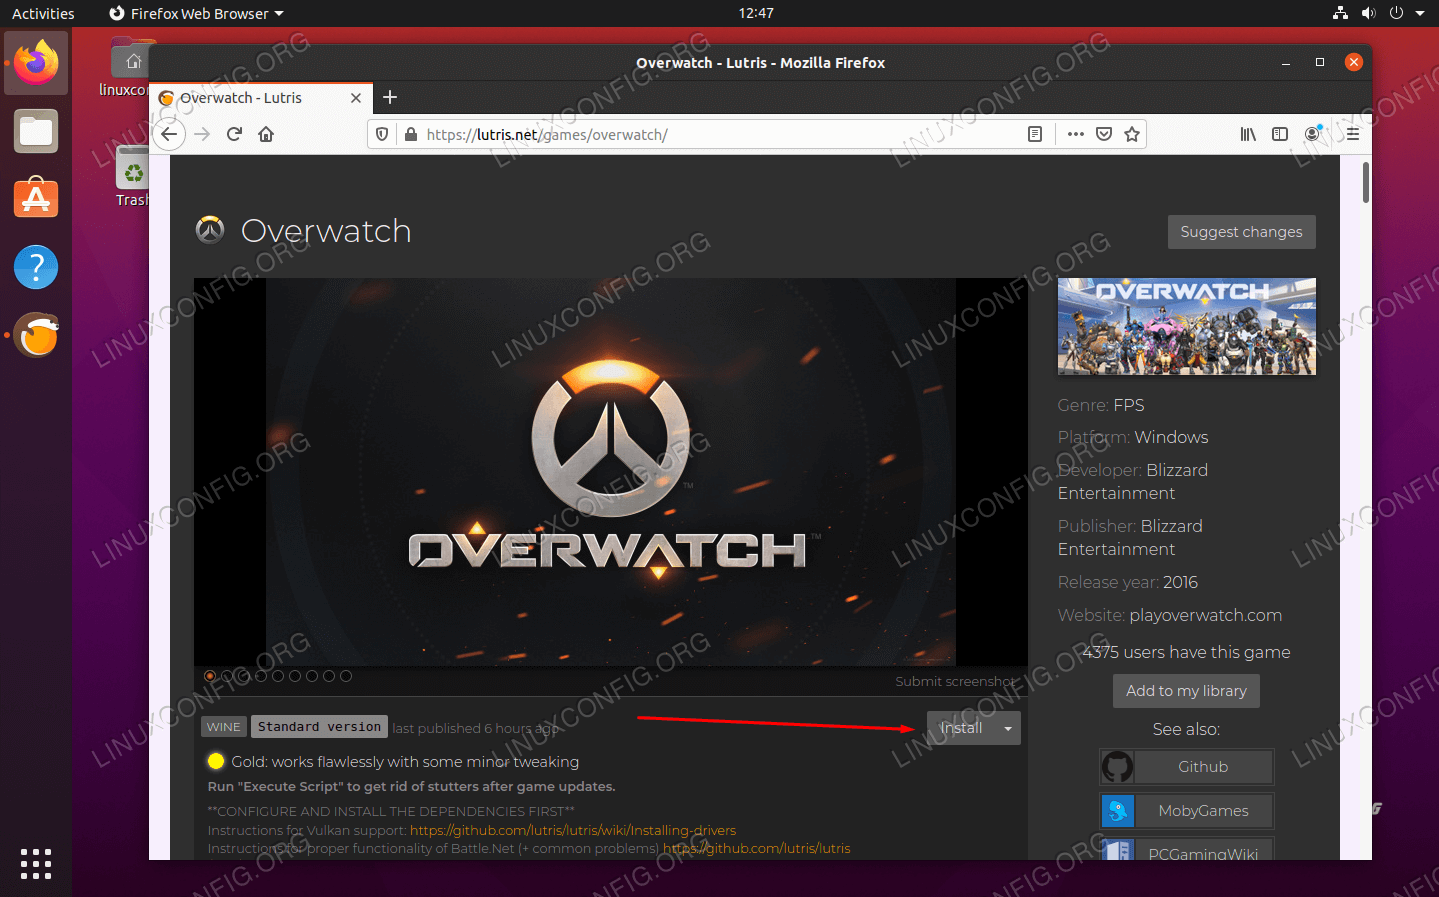 Click install on the game you'd like to get